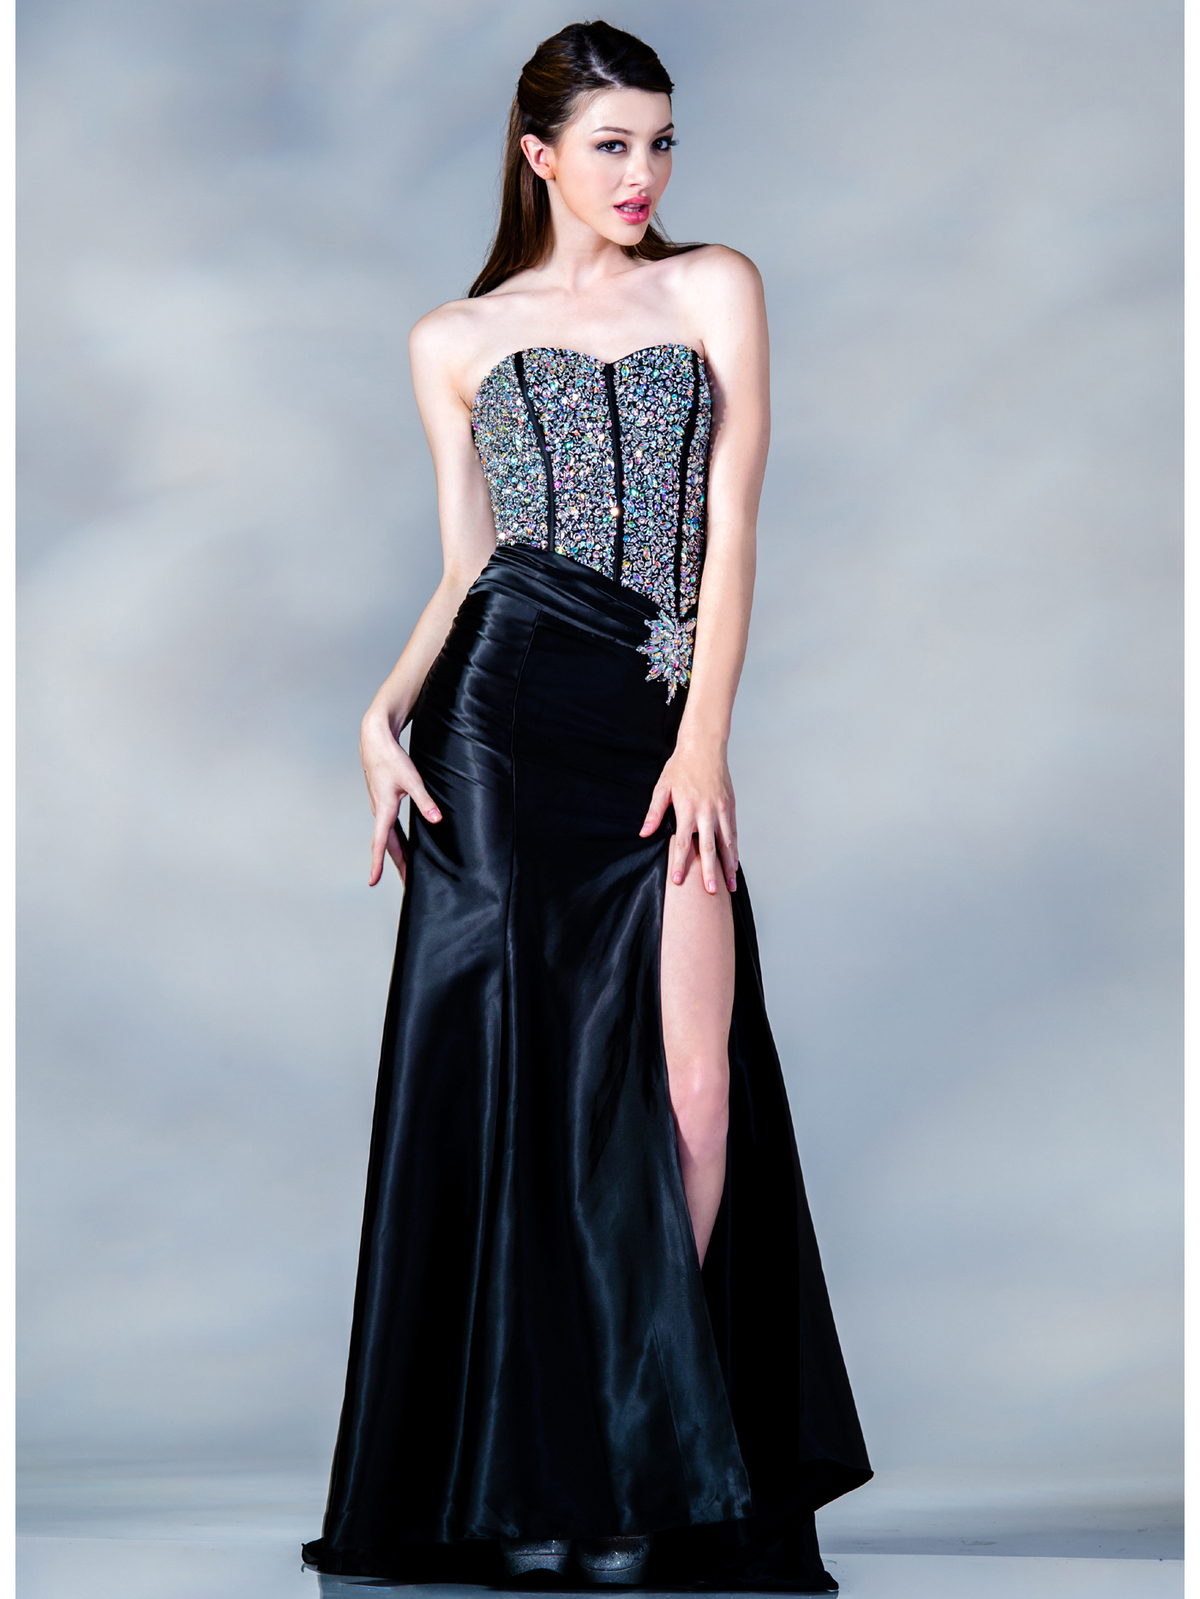 Jeweled Corset Prom Dress | Sung Boutique L.A.